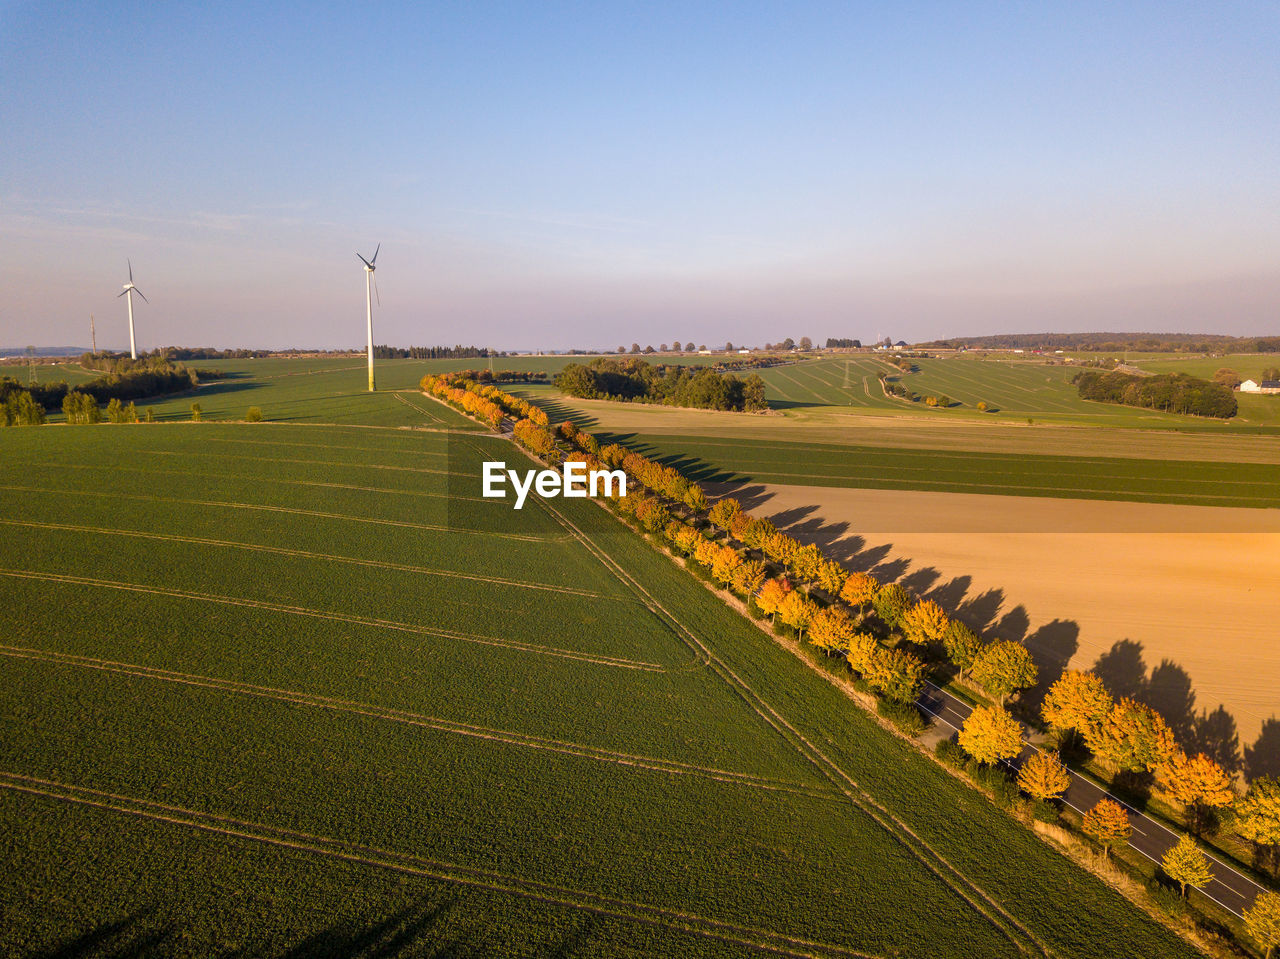 landscape, environment, sky, scenics - nature, field, rural scene, beauty in nature, tranquil scene, land, wind turbine, tranquility, agriculture, turbine, nature, renewable energy, alternative energy, environmental conservation, no people, growth, plant, outdoors, sustainable resources